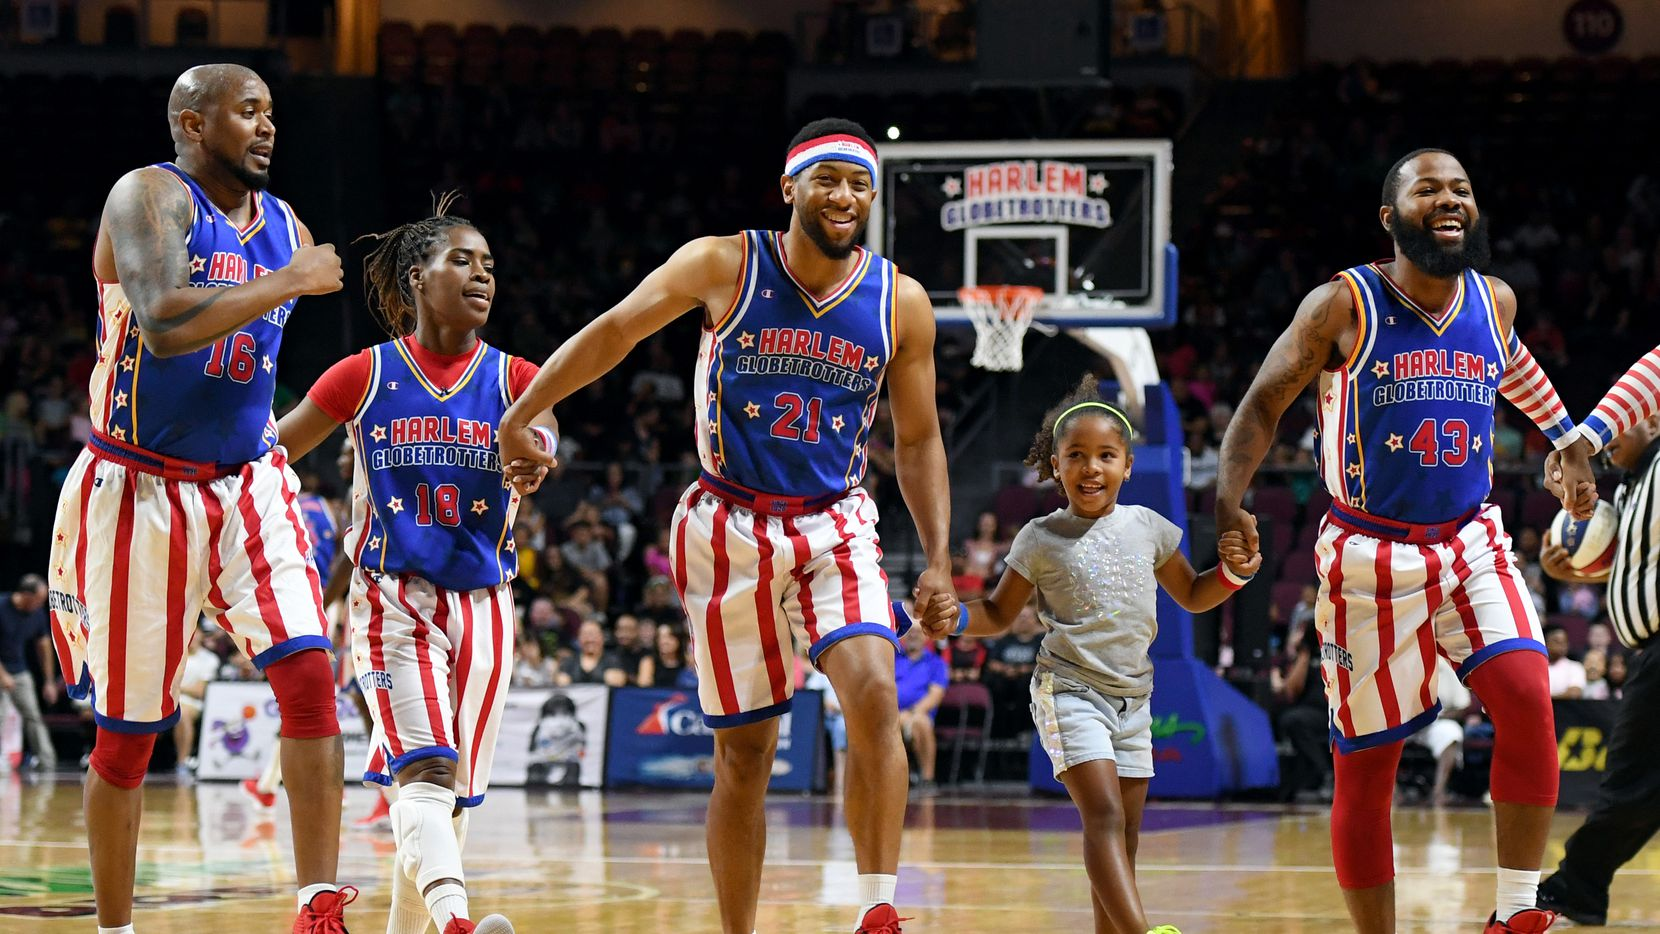 Gianna Burney, 6, skips with Harlem Globetrotters players during a team appearance in Las Vegas.